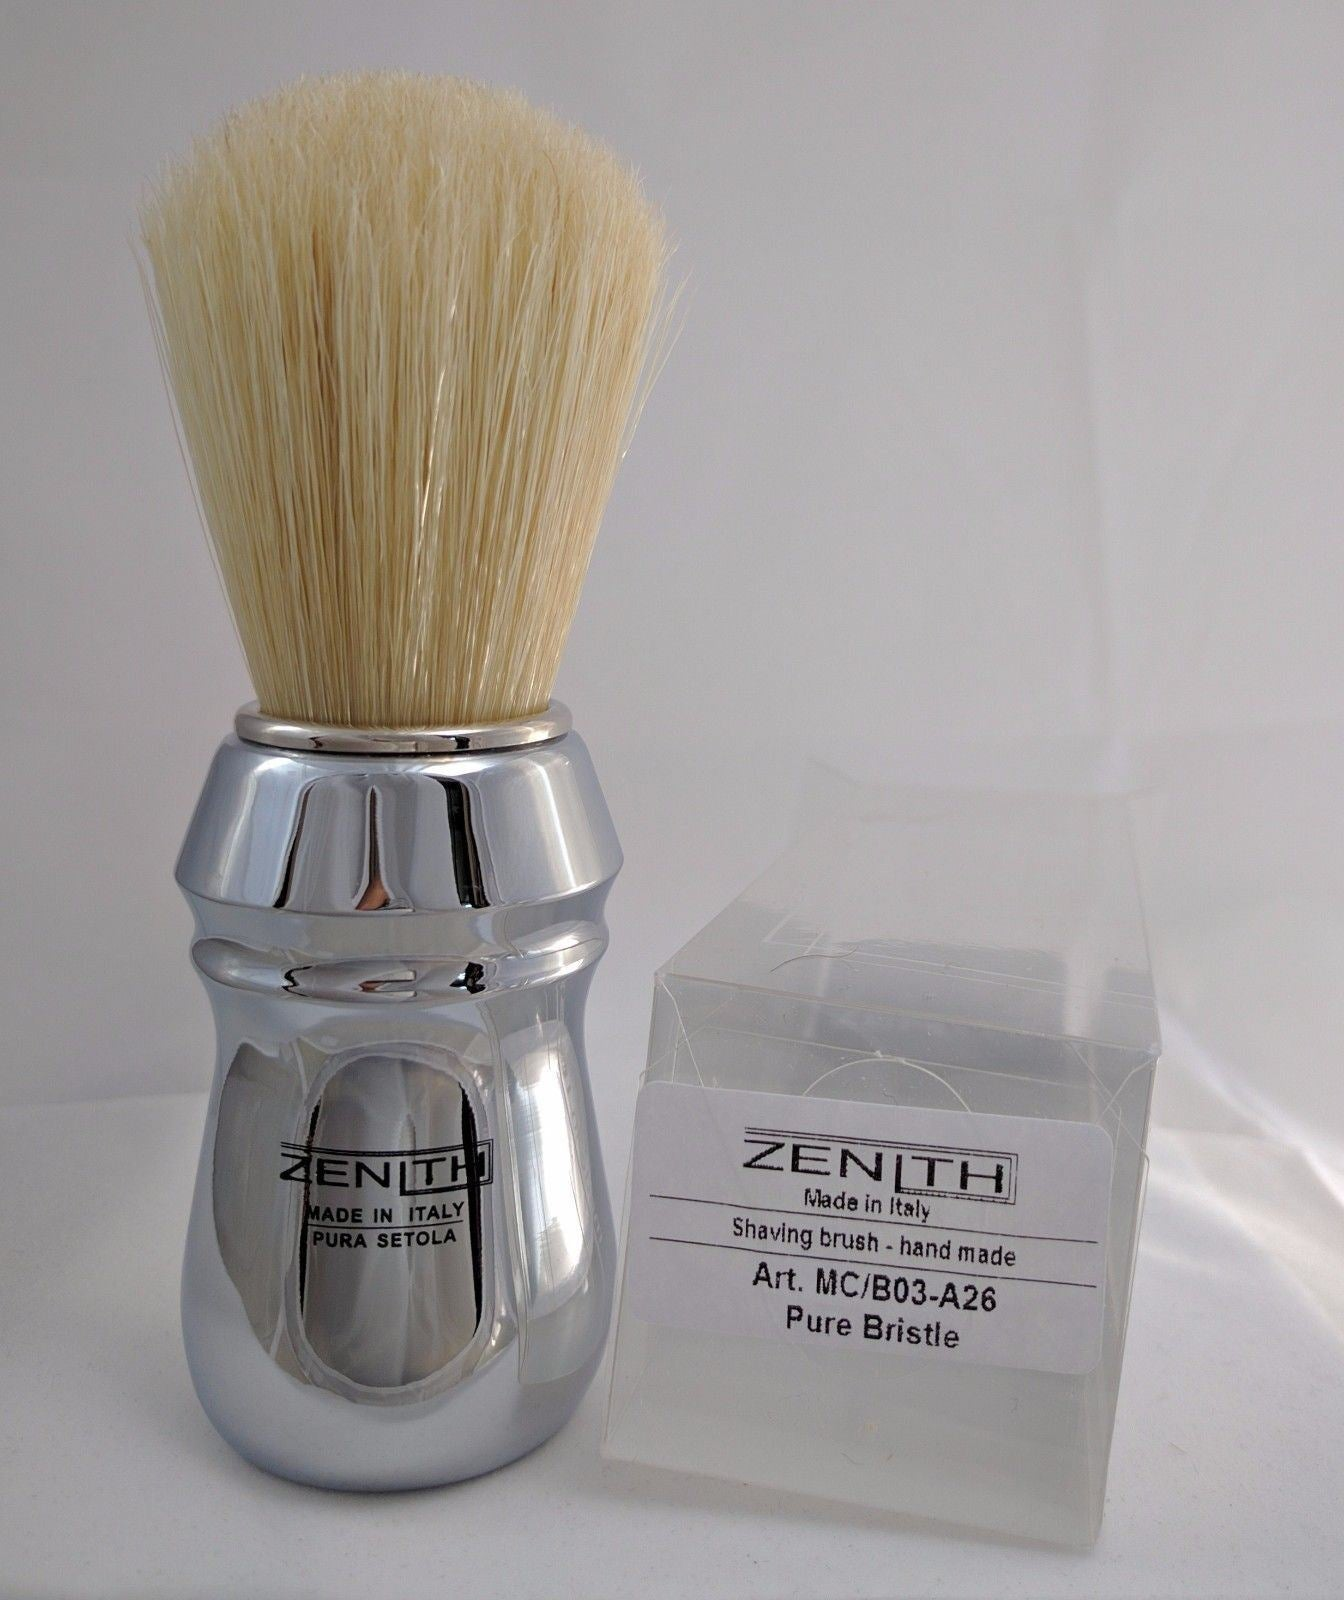 All Metal Chromed Big Boar Shave Brush By Zenith 26x57mm B19 The Gentle Shave